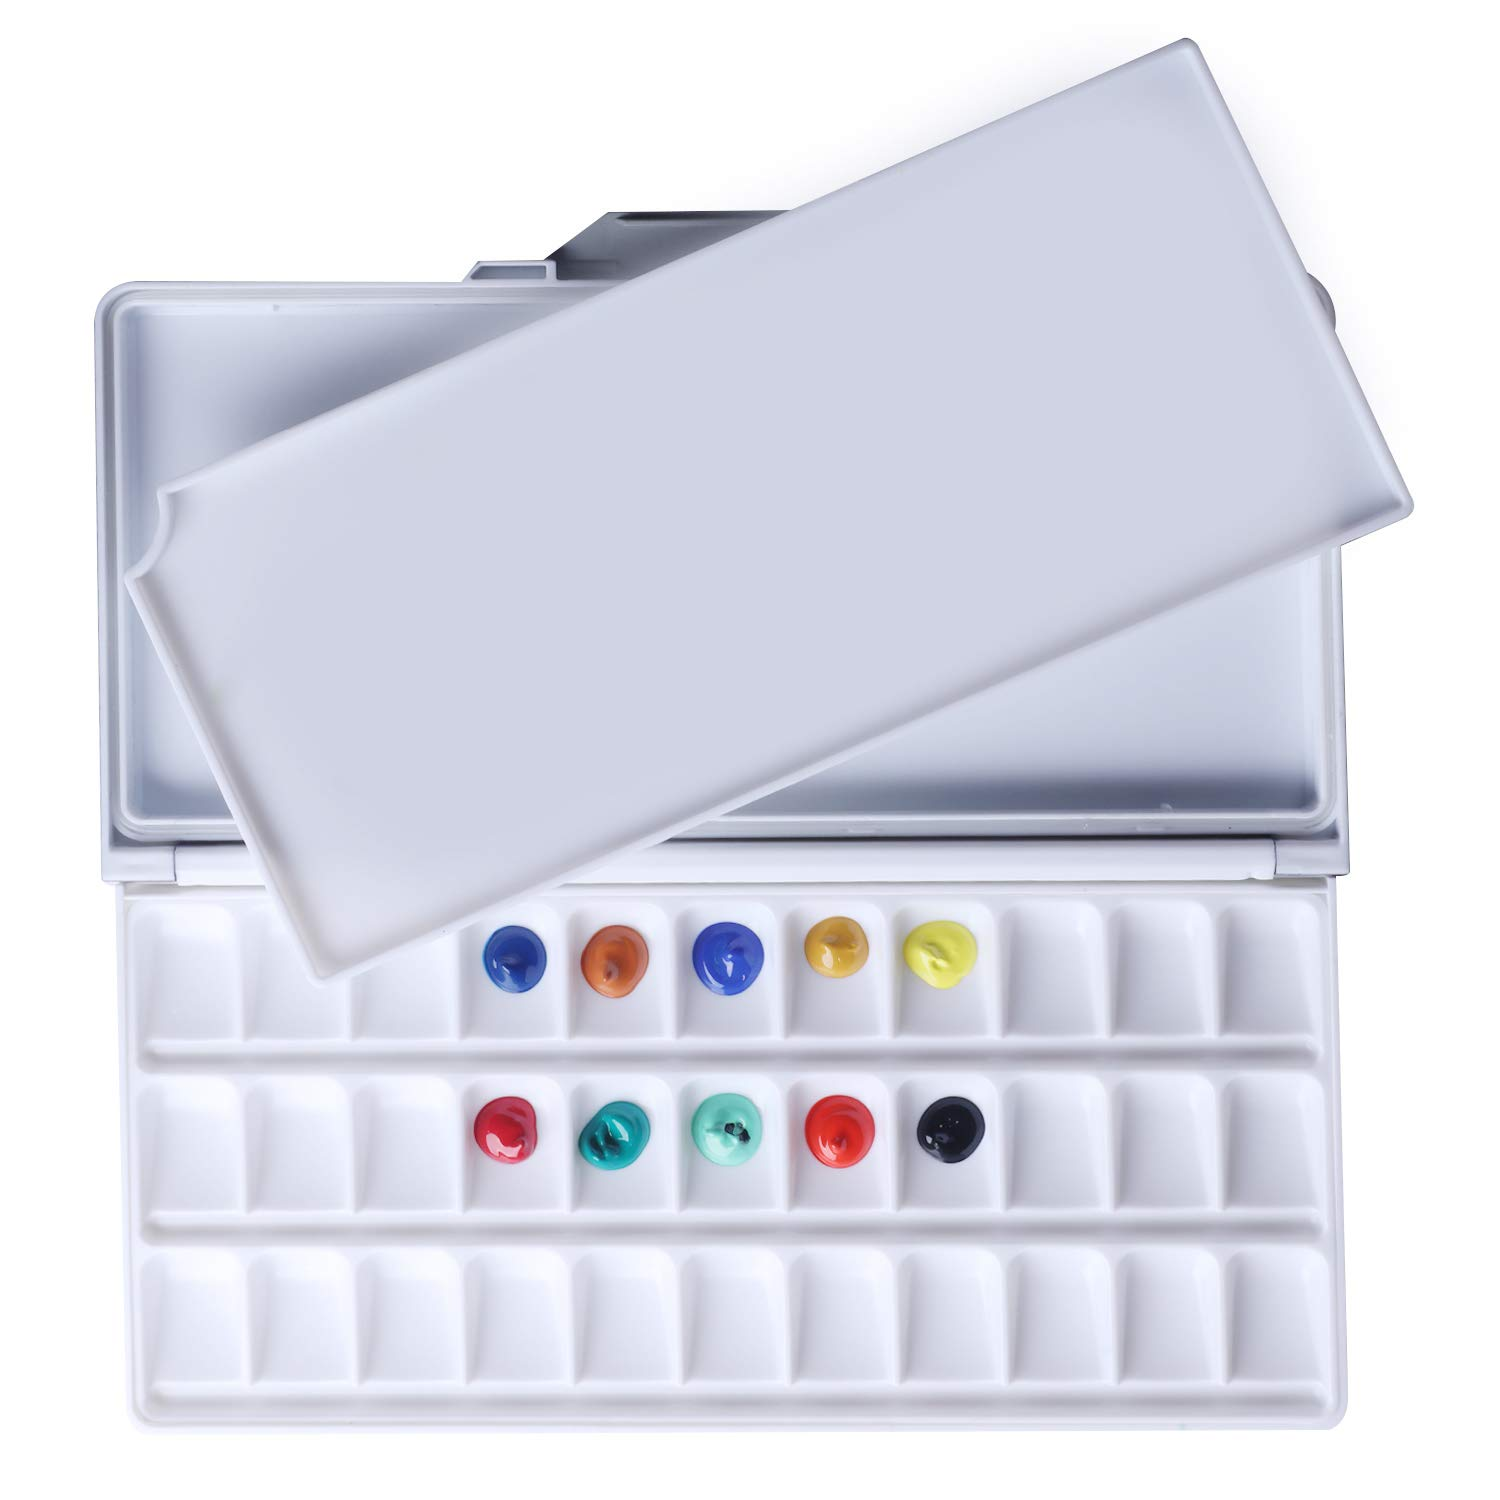 MEEDEN Airtight Leakproof Watercolor Palette Travel Paint Tray with A Large Mixing Areas, 33 Wells Black Folding Peel-Off Palette for Watercolor, Gouache, Acrylic Paint by MEEDEN